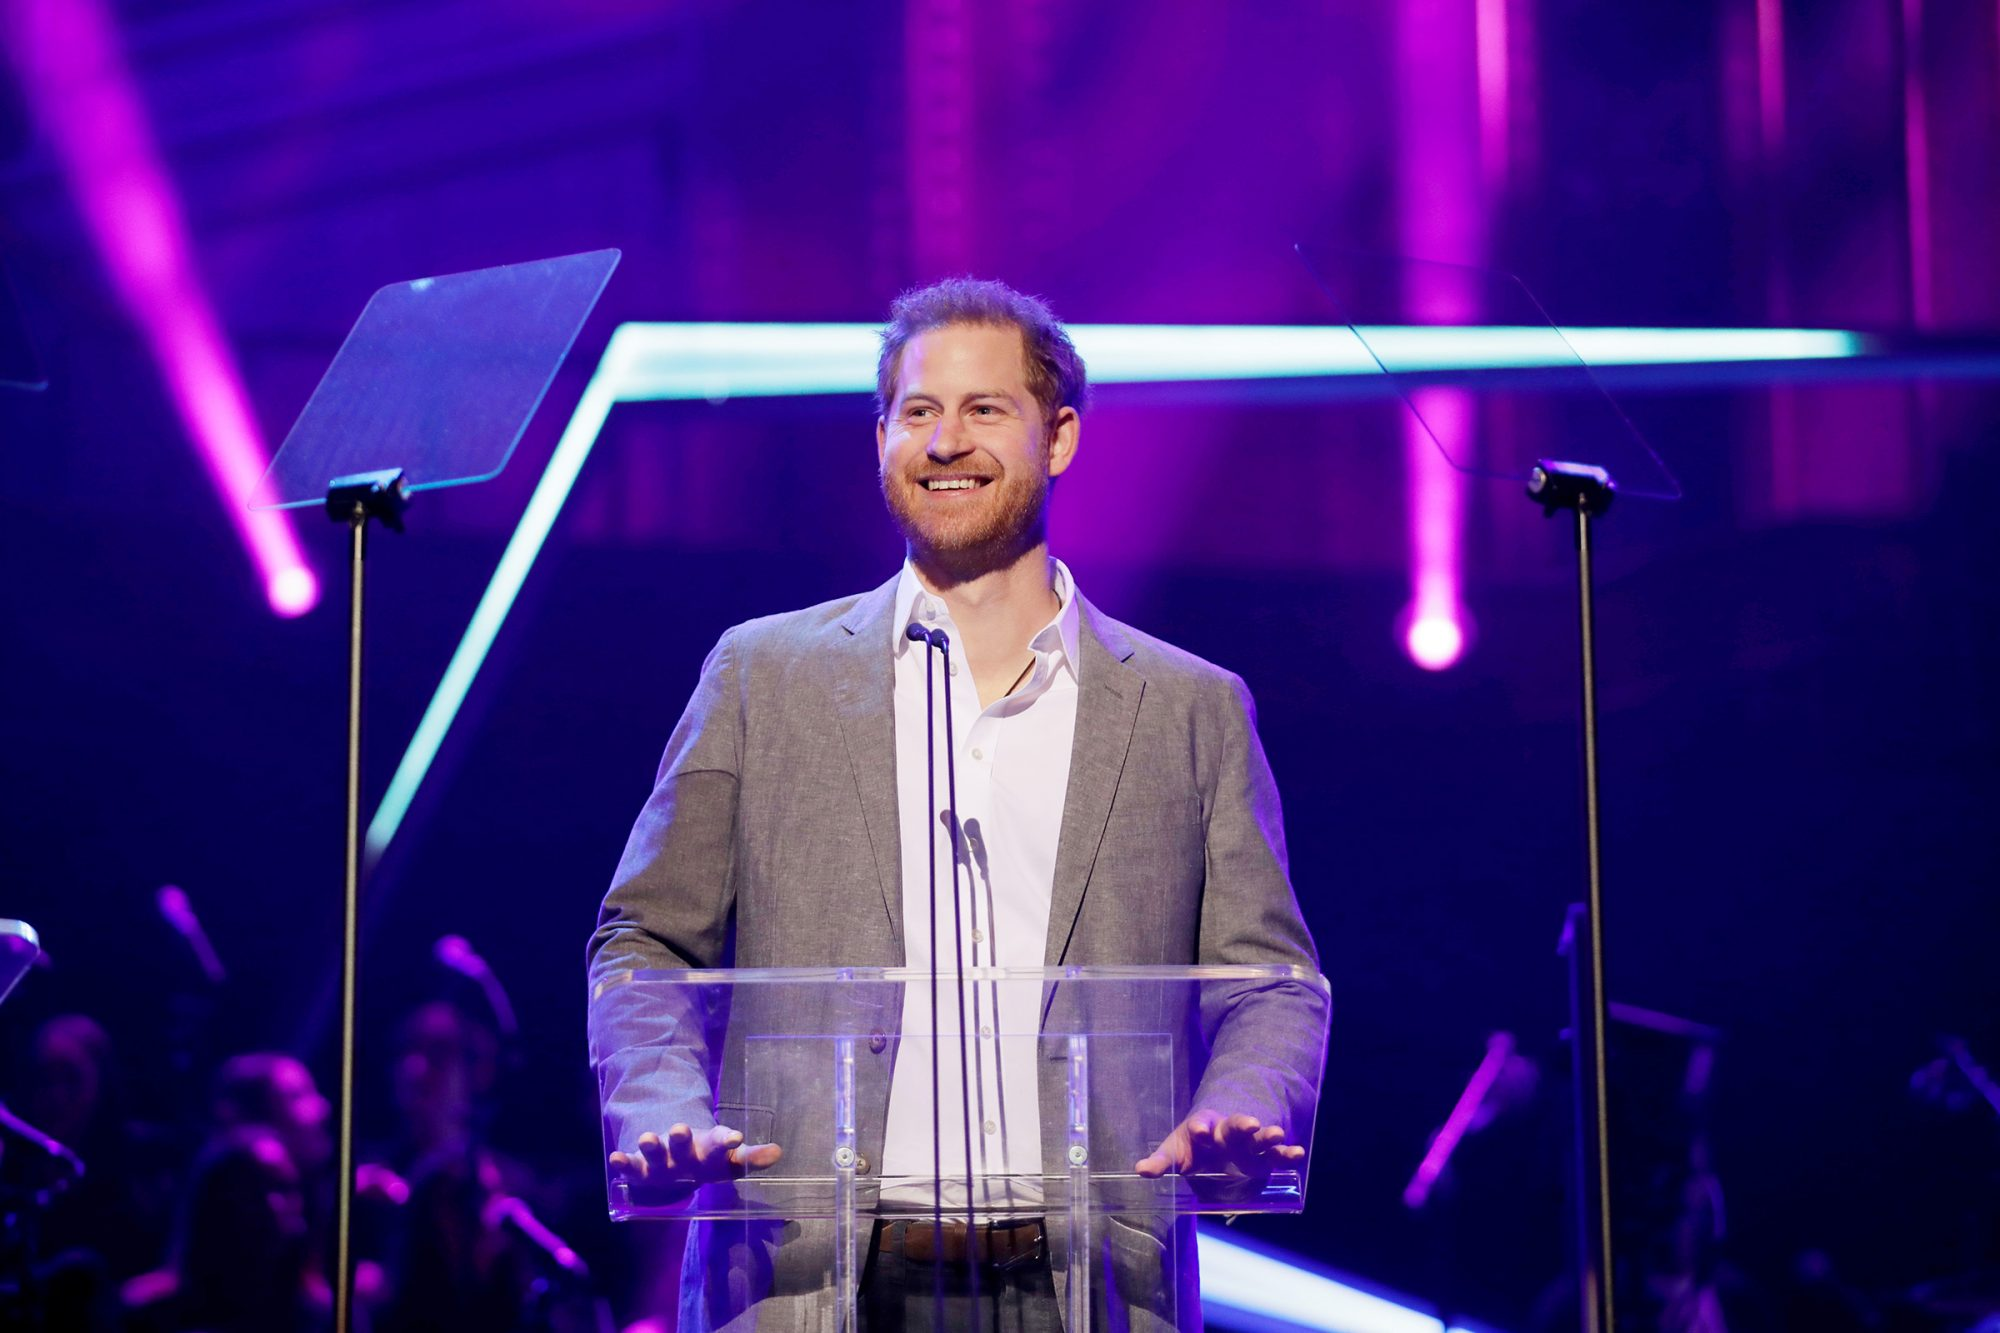 Prince Harry gives a speech on stage before announcing the winners of the Health and Wellbeing category at the inaugural OnSide Awards at the Royal Albert Hall in London, . OnSide is a charity whose purpose is to create state-of-the-art 21st century youth facilities called 'Youth Zones' that give young people safe and inspiring places to spend their leisure time Royals, London, United Kingdom - 17 Nov 2019